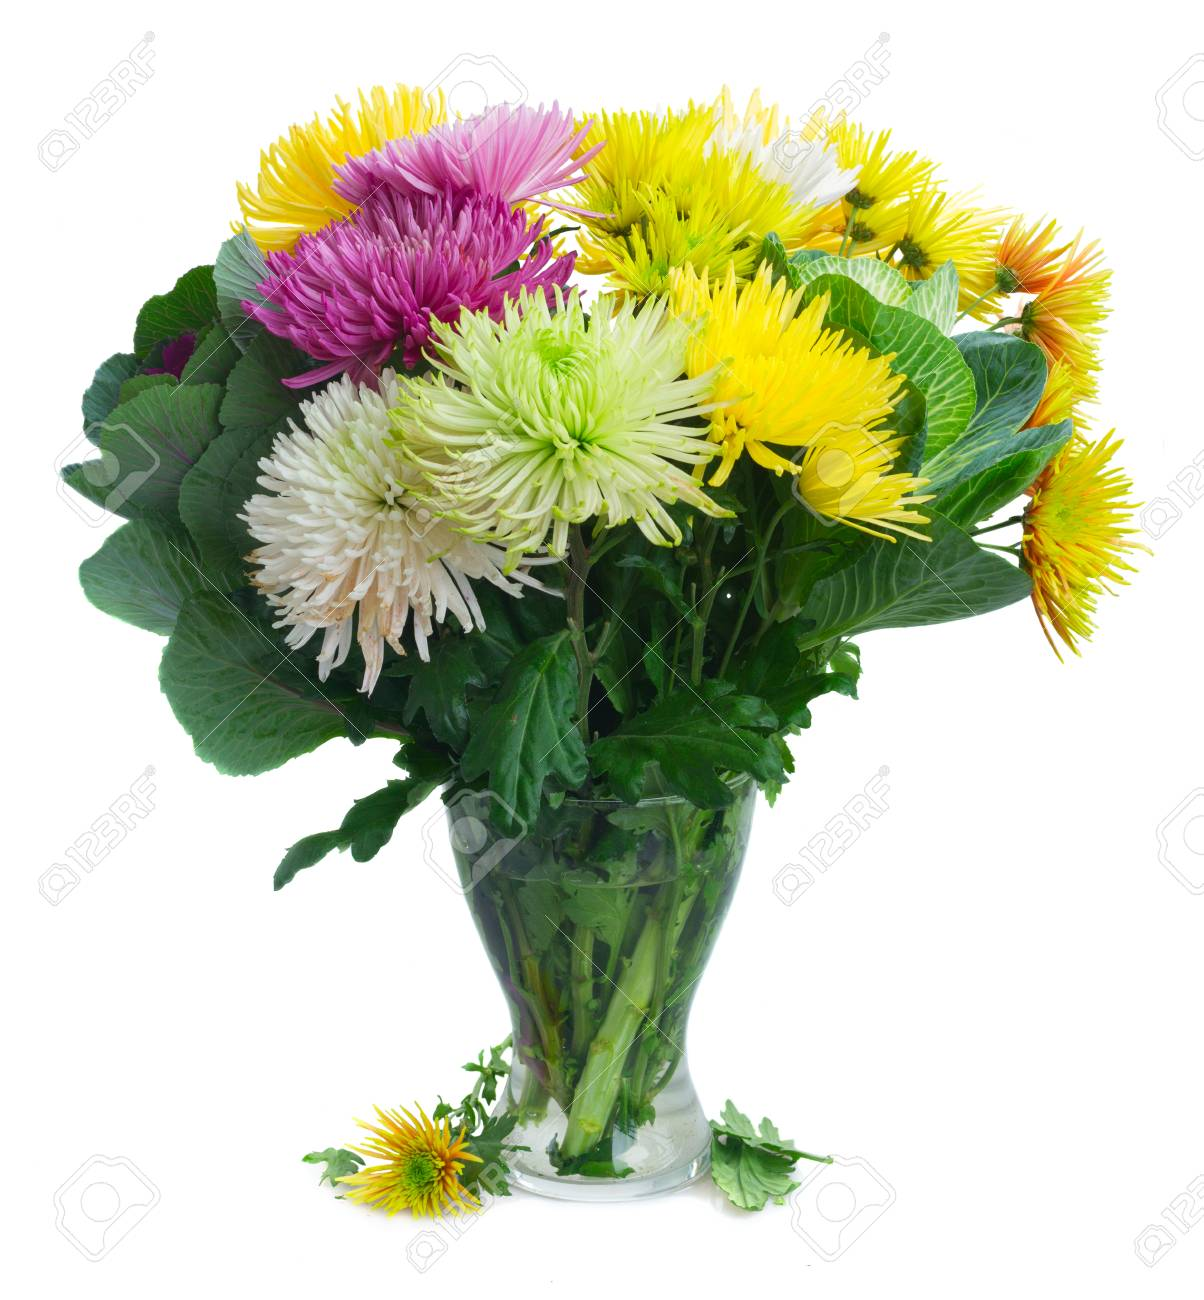 Chrisantemum Fresh Fall Flowers Bouquet In Glass Vase Isolated